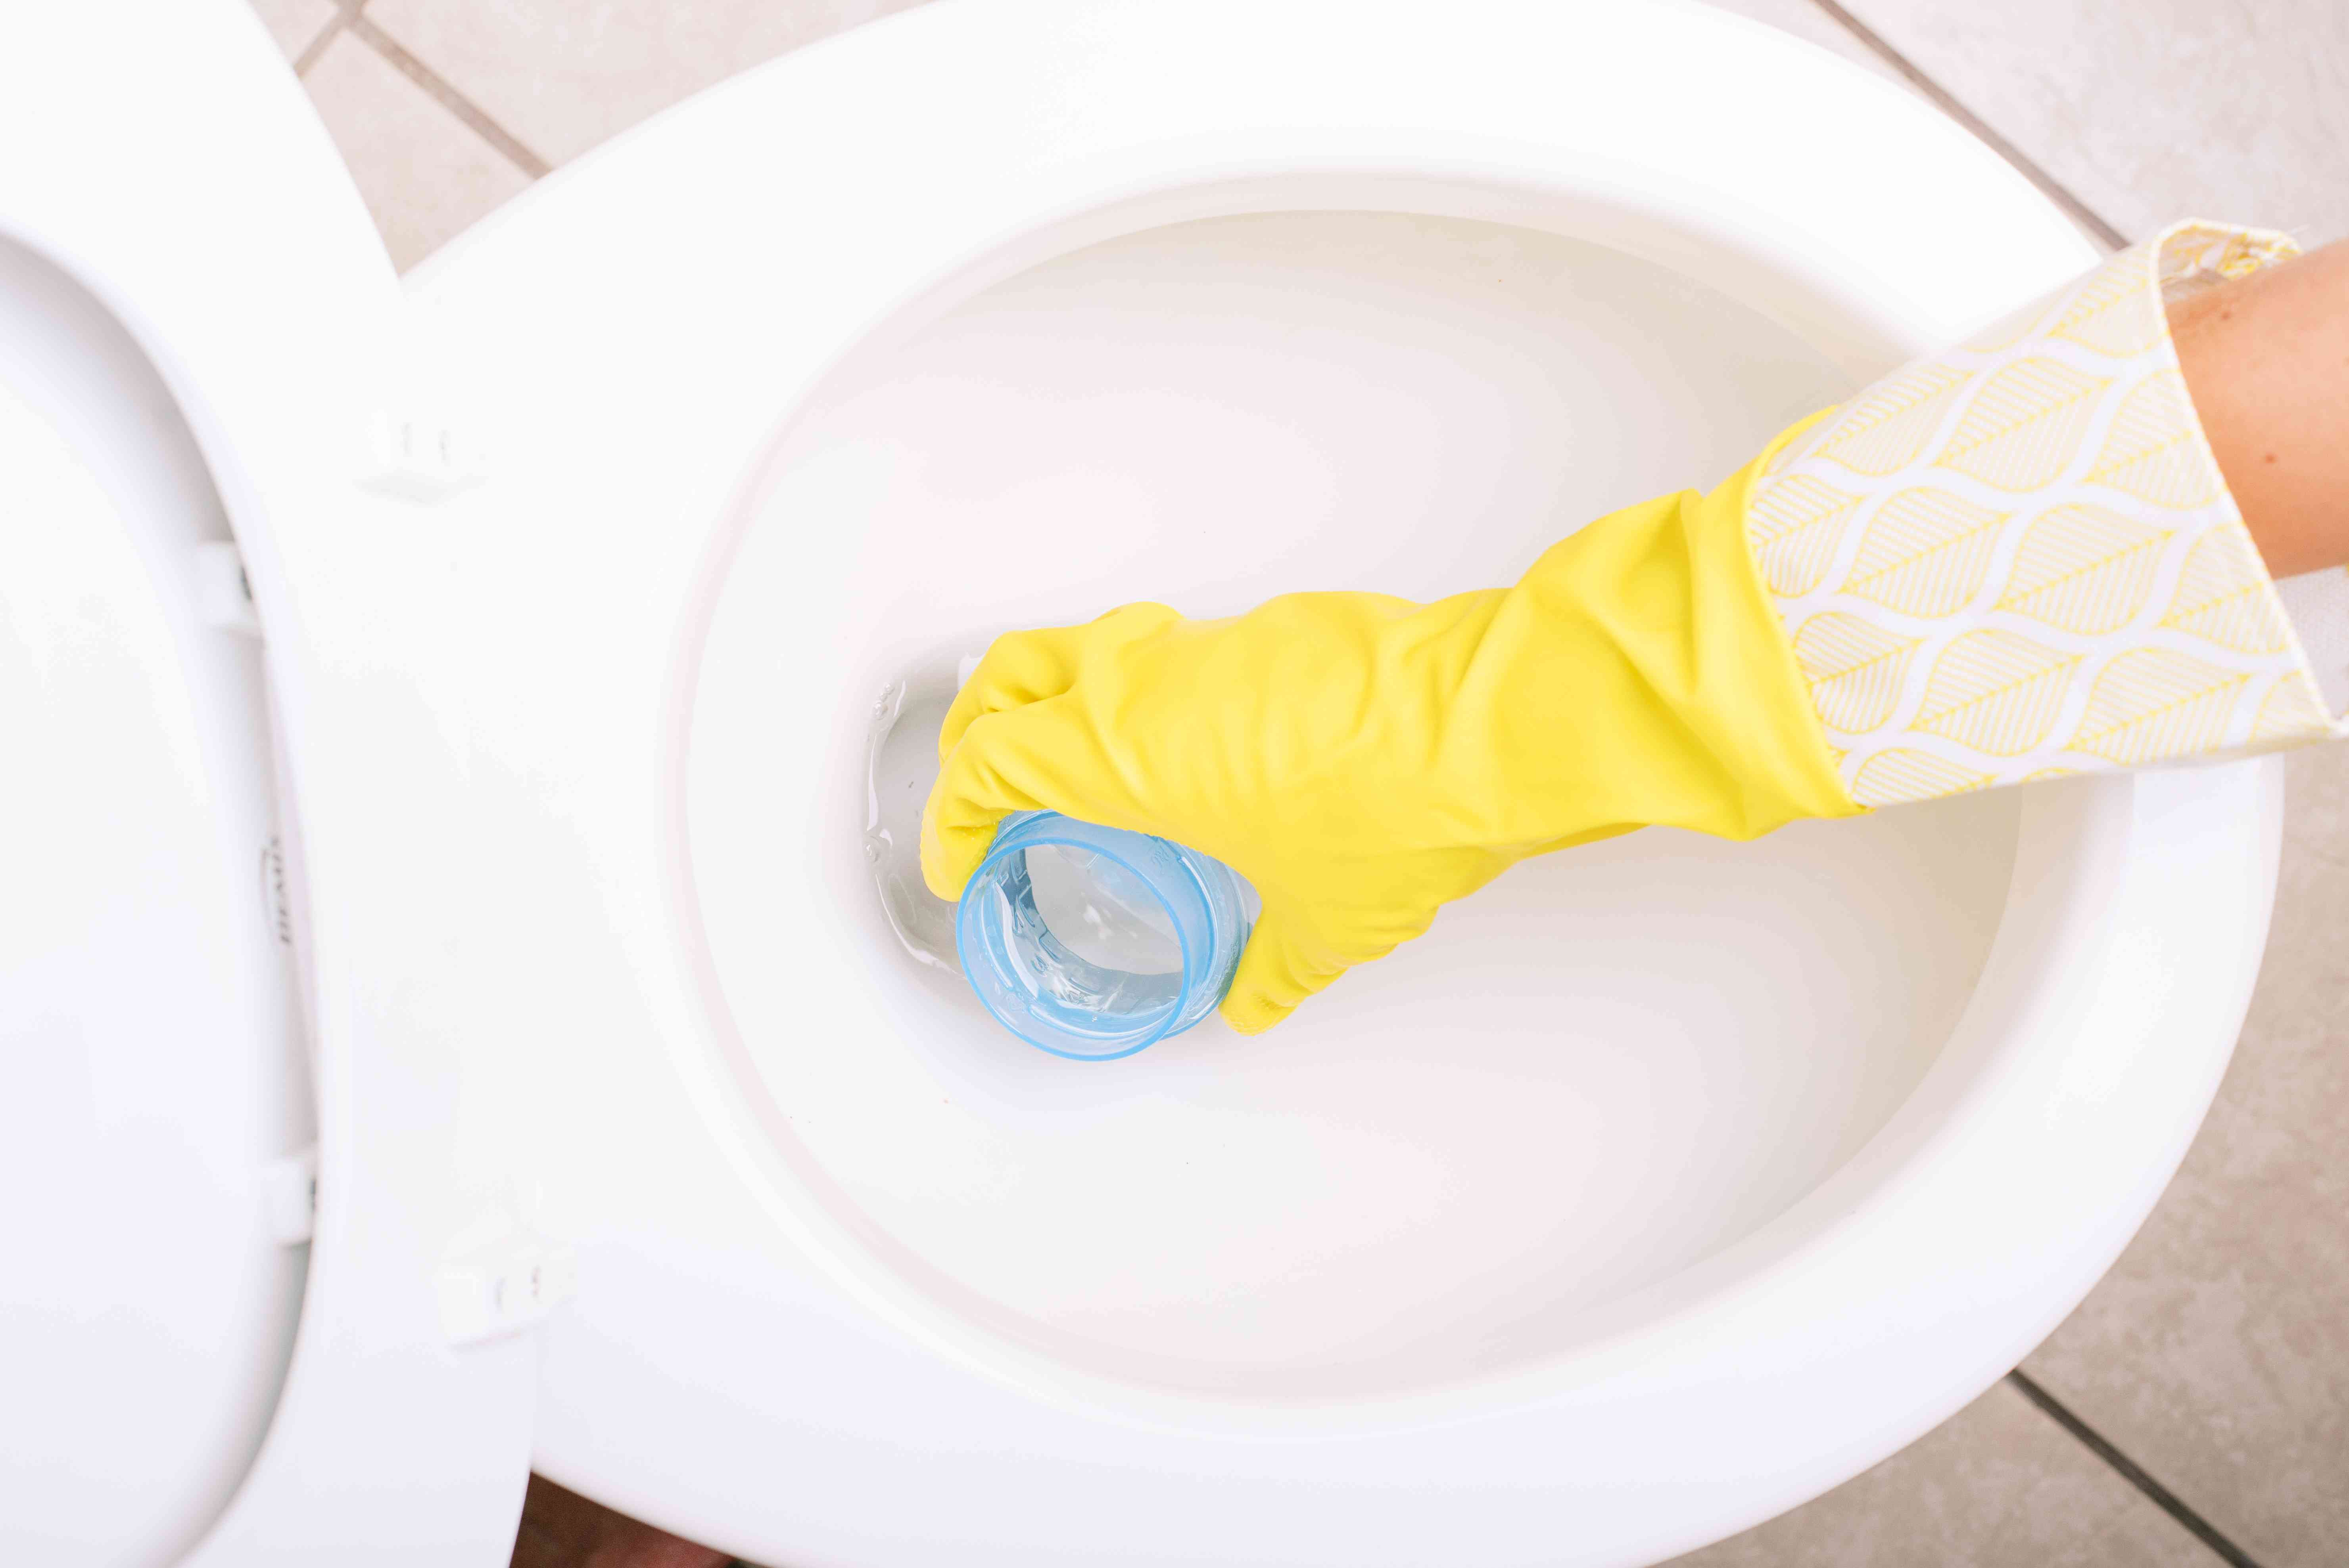 White ceramic toilet bailing out water with laundry bottle cap and yellow gloves